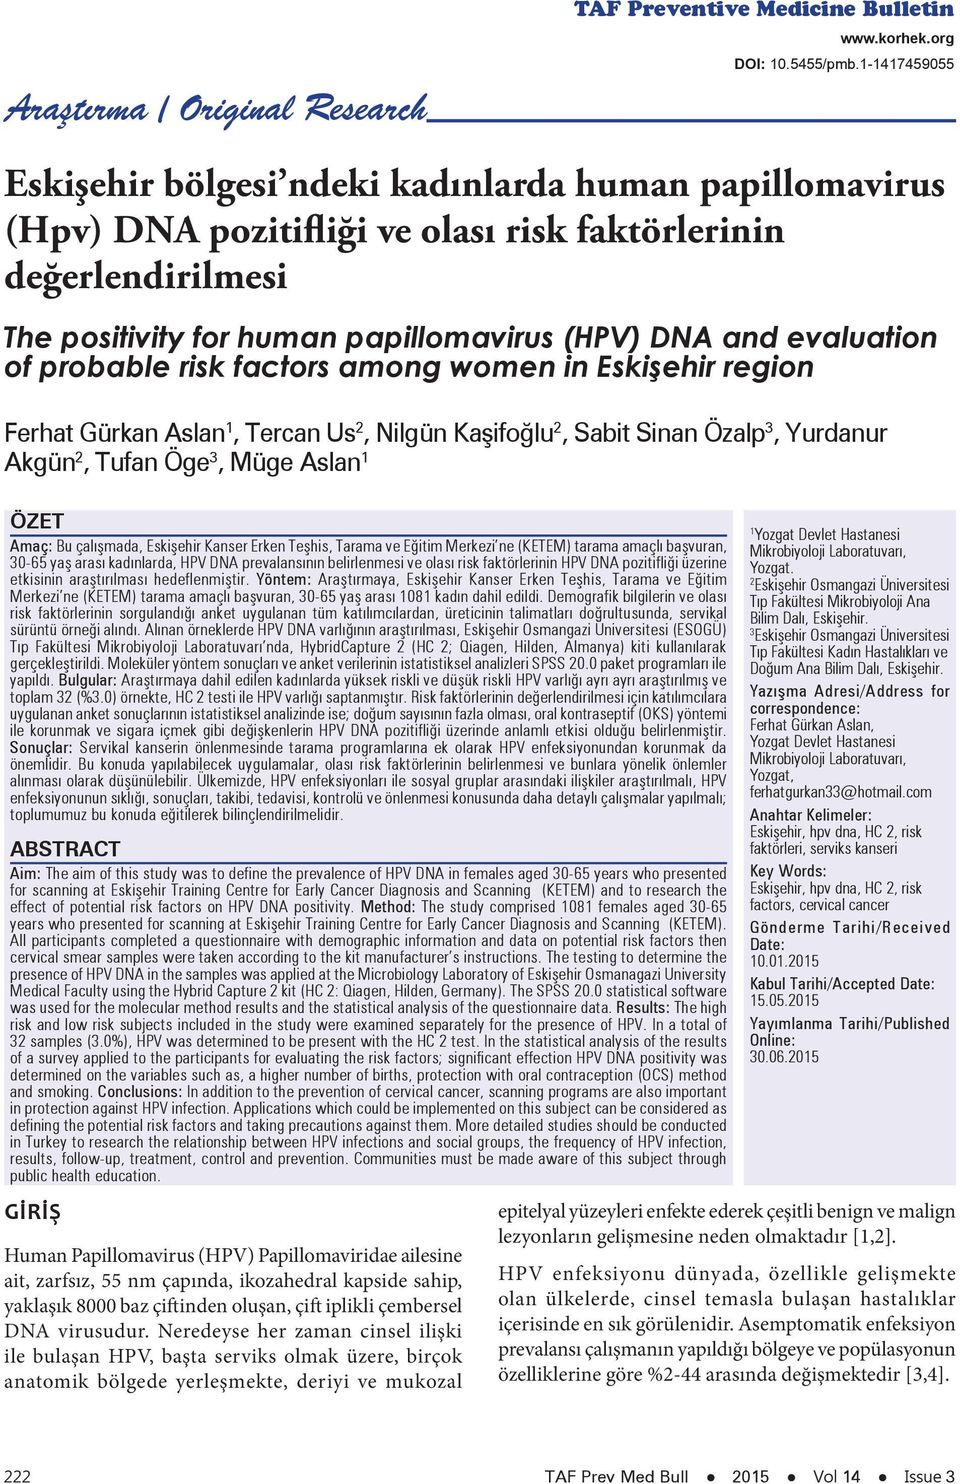 evaluation of probable risk factors among women in Eskişehir region Ferhat Gürkan Aslan 1, Tercan Us 2, Nilgün Kaşifoğlu 2, Sabit Sinan Özalp 3, Yurdanur Akgün 2, Tufan Öge 3, Müge Aslan 1 ÖZET Amaç: